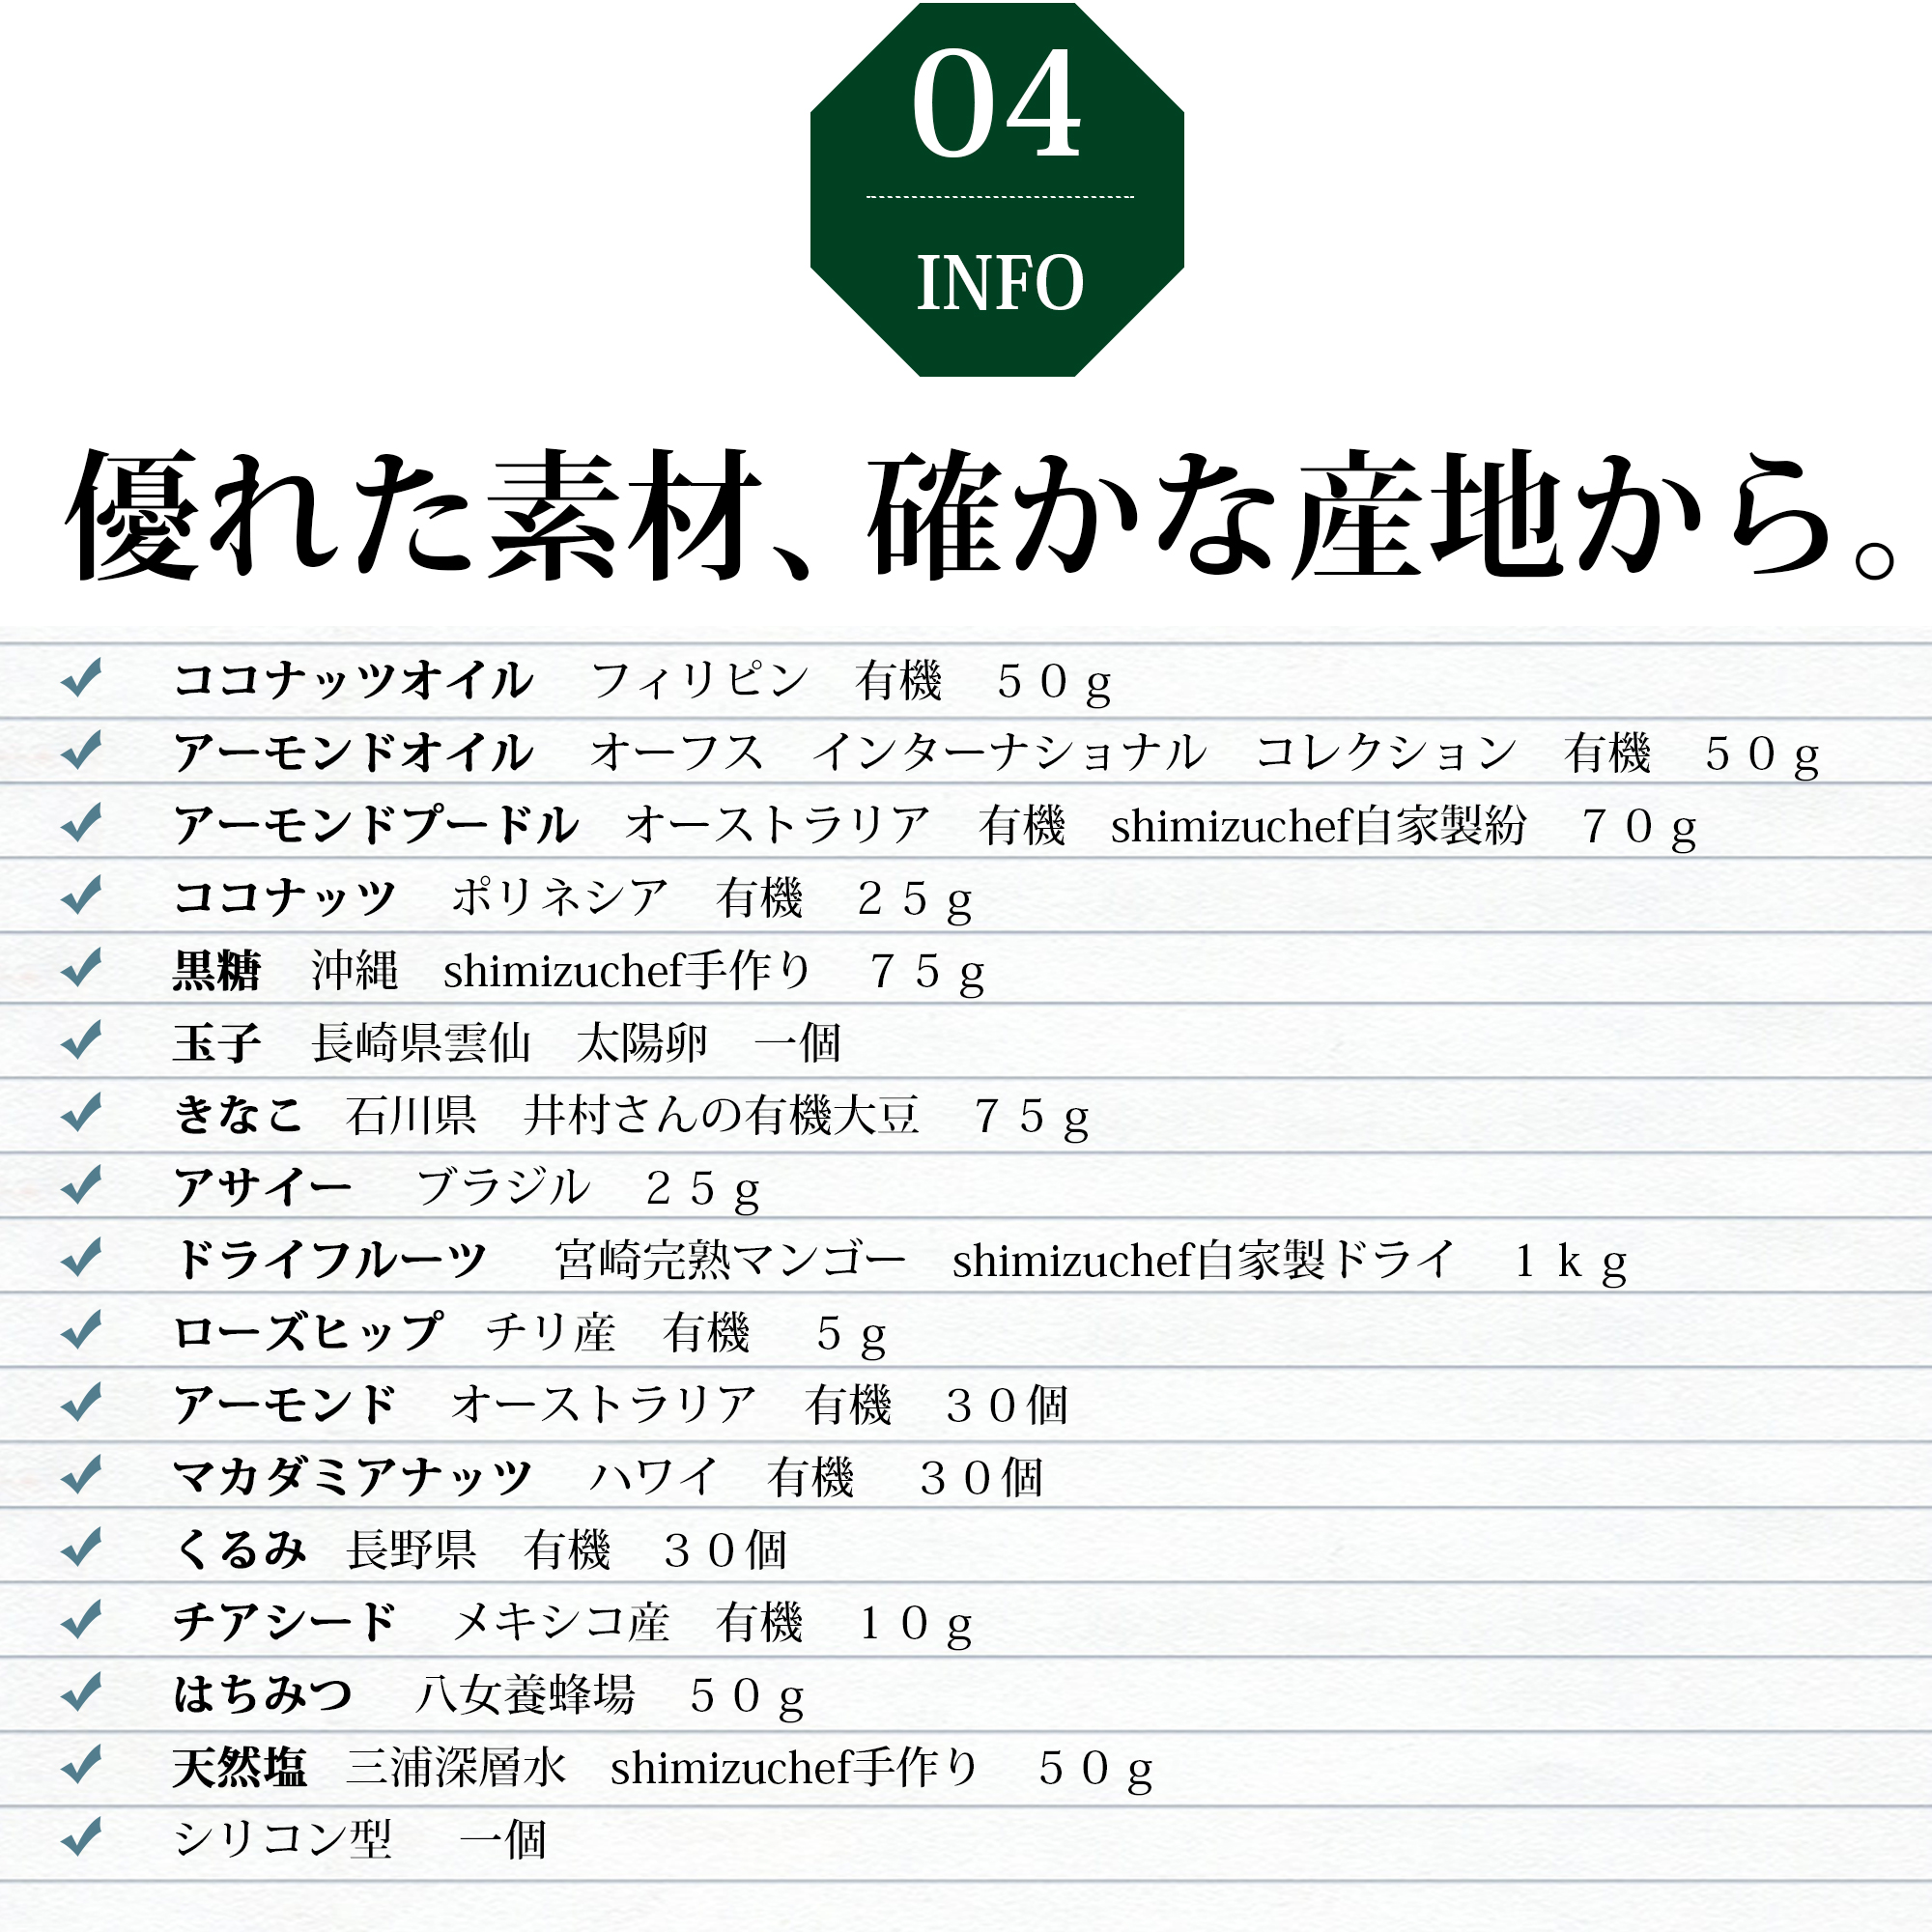 bcookie-info1